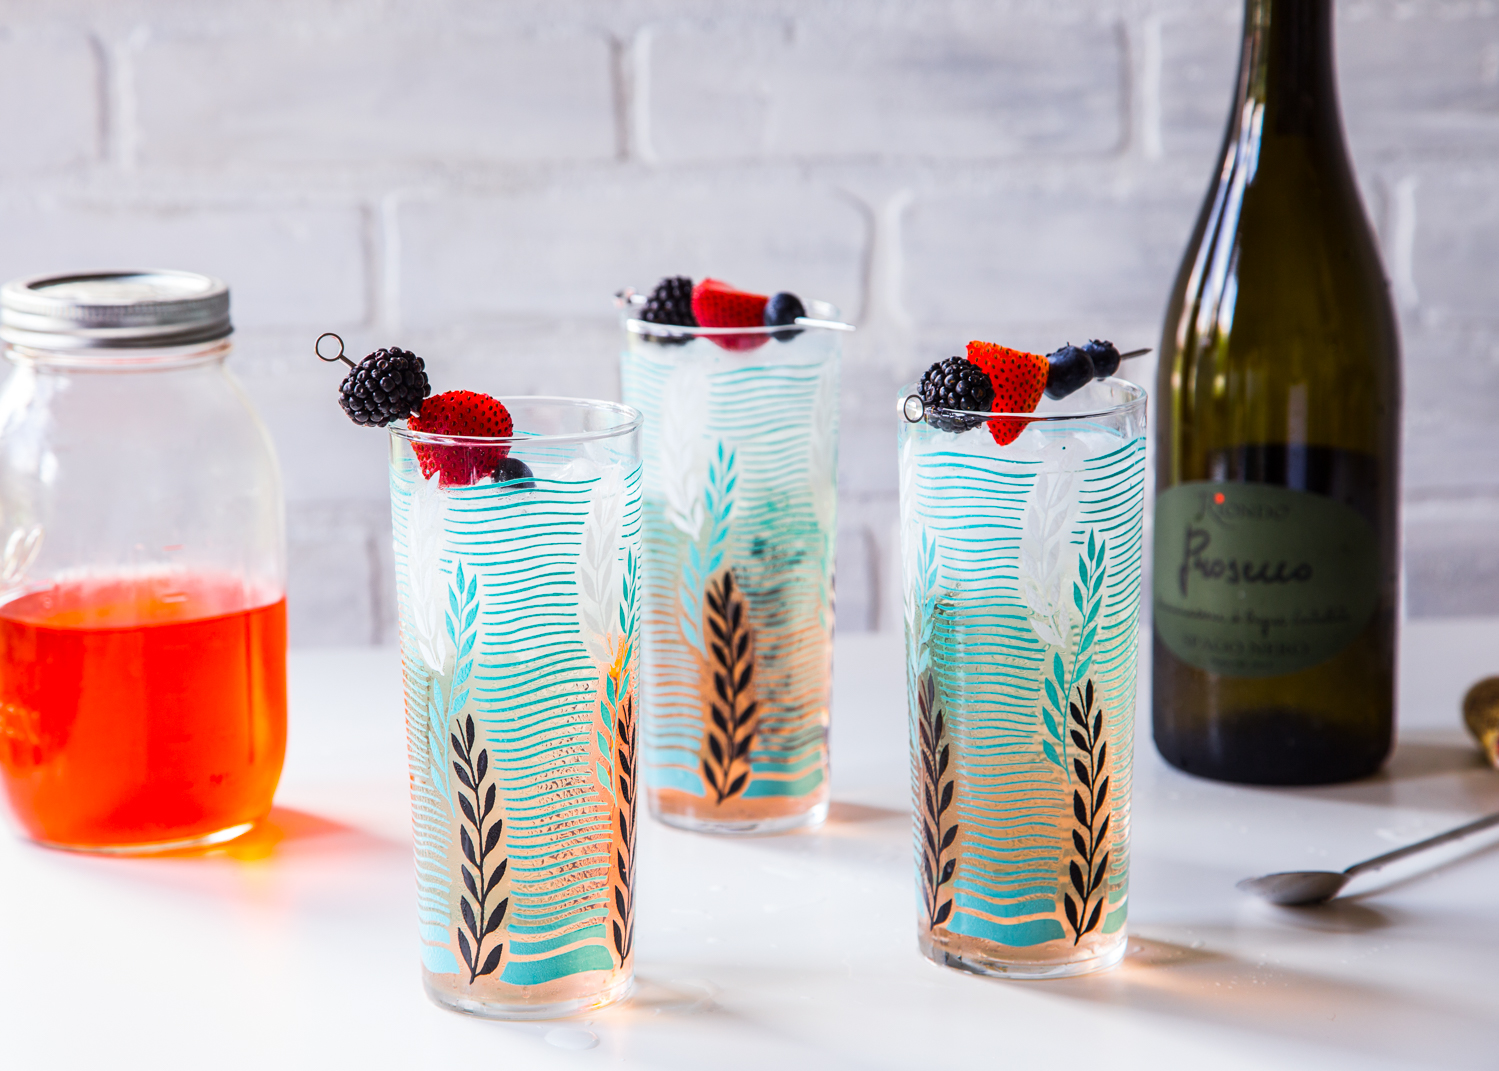 Berry Shrub Spritzer for a refreshing summer drink